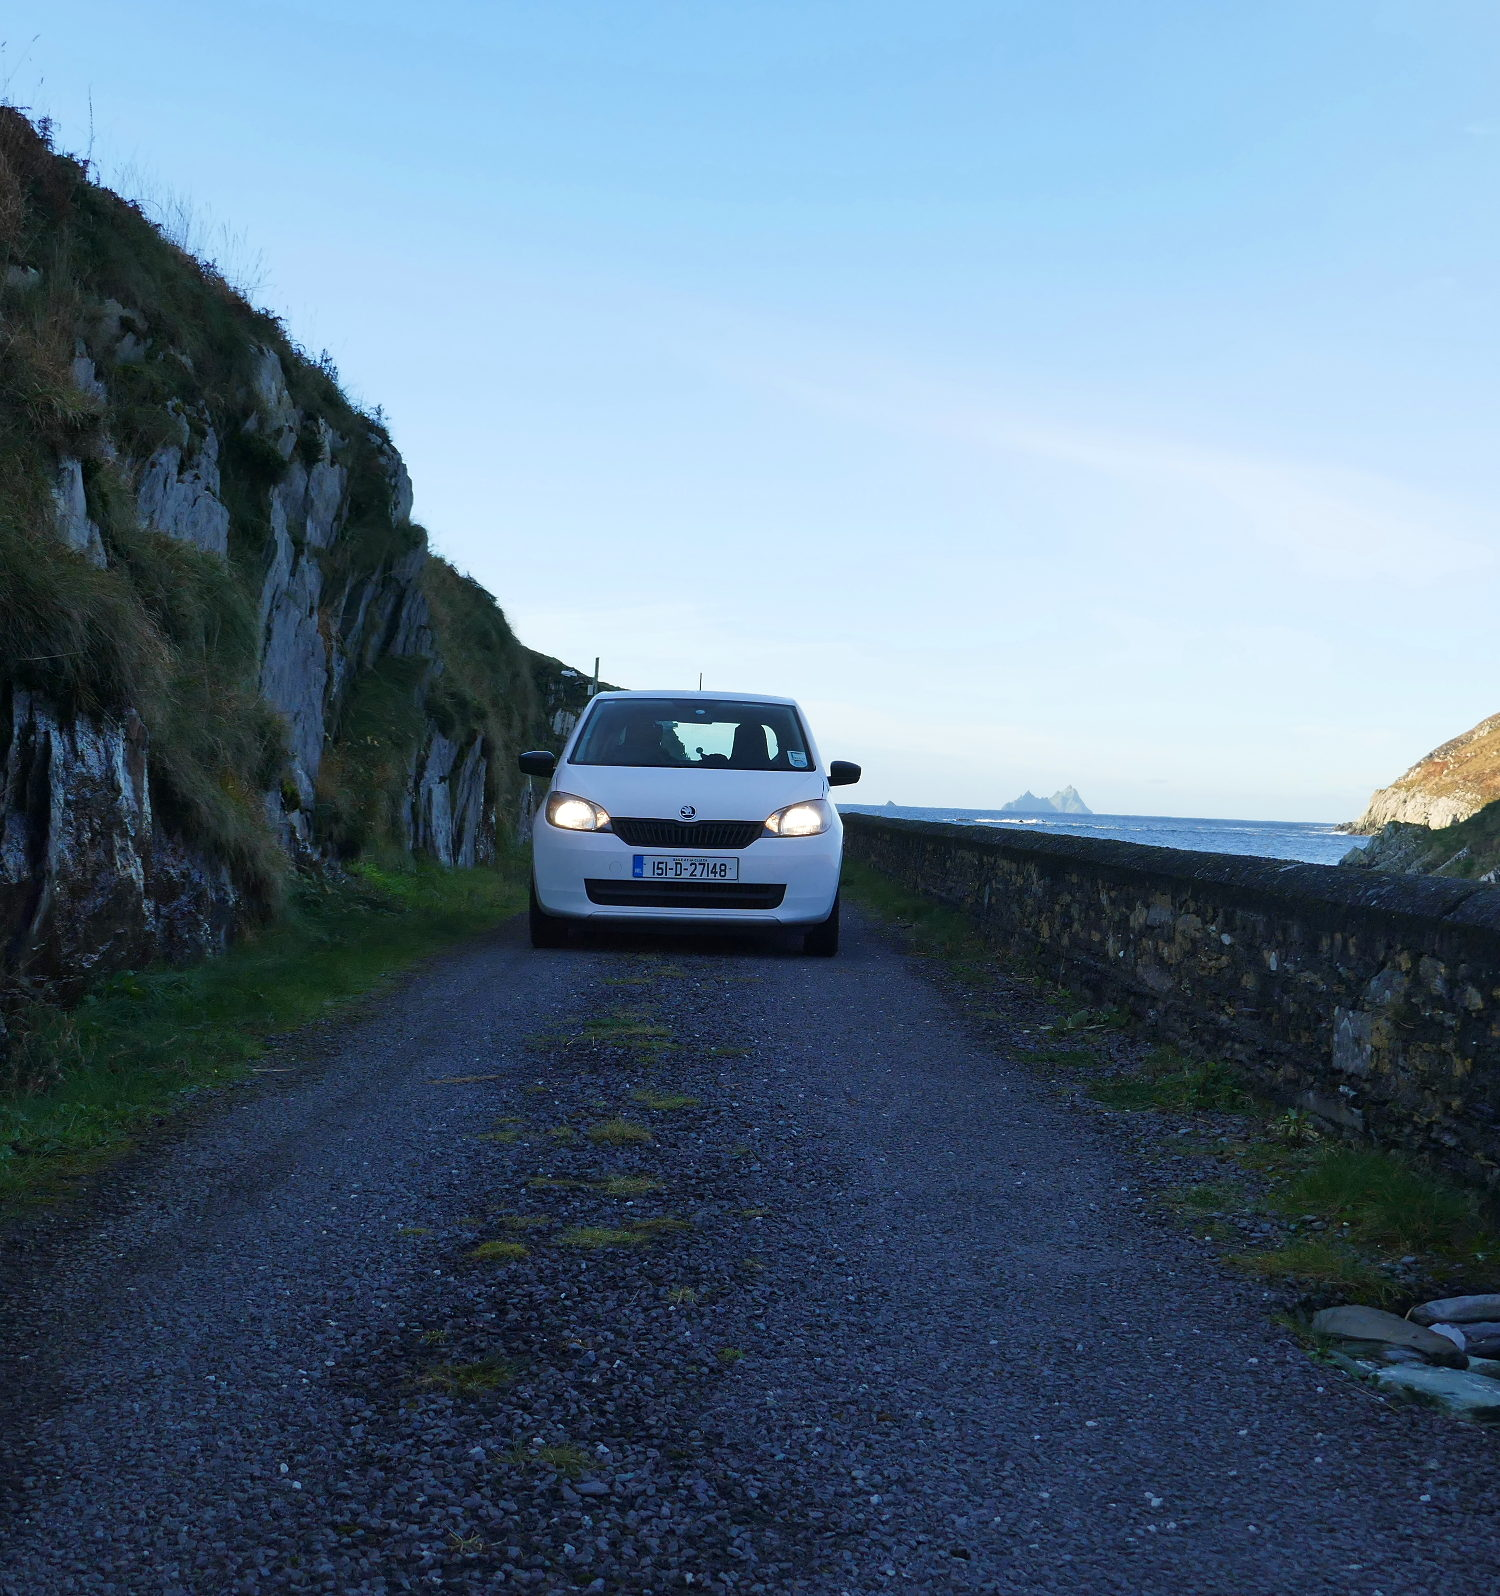 And that's a road meant for 2-way traffic! Ireland.